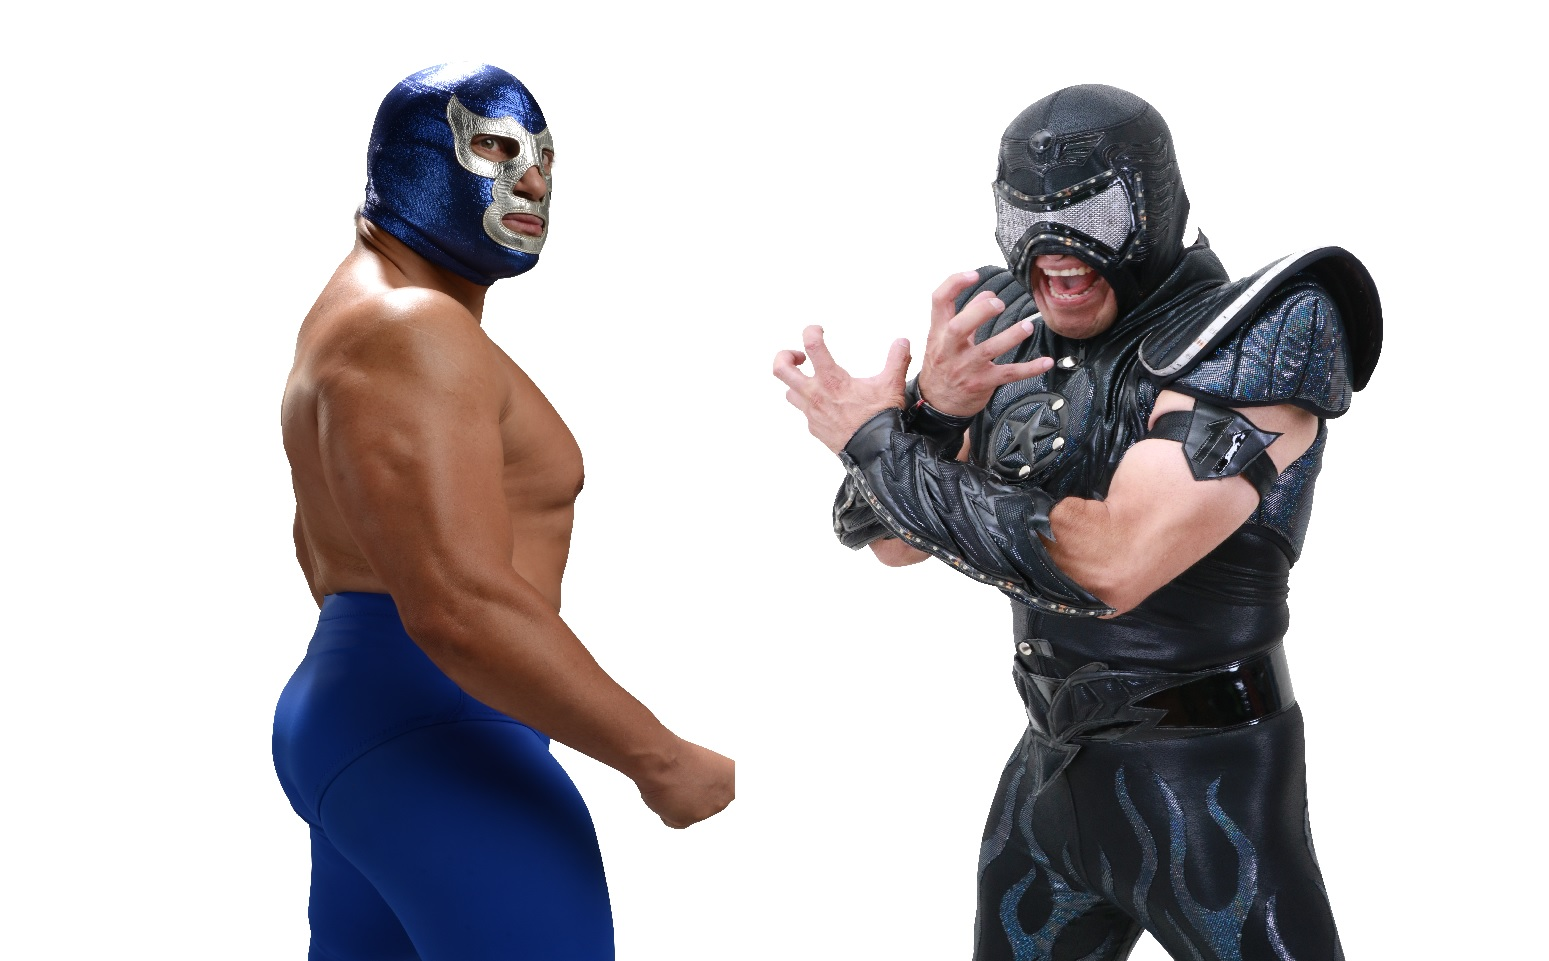 Blue Demon y Aerostar.jpg